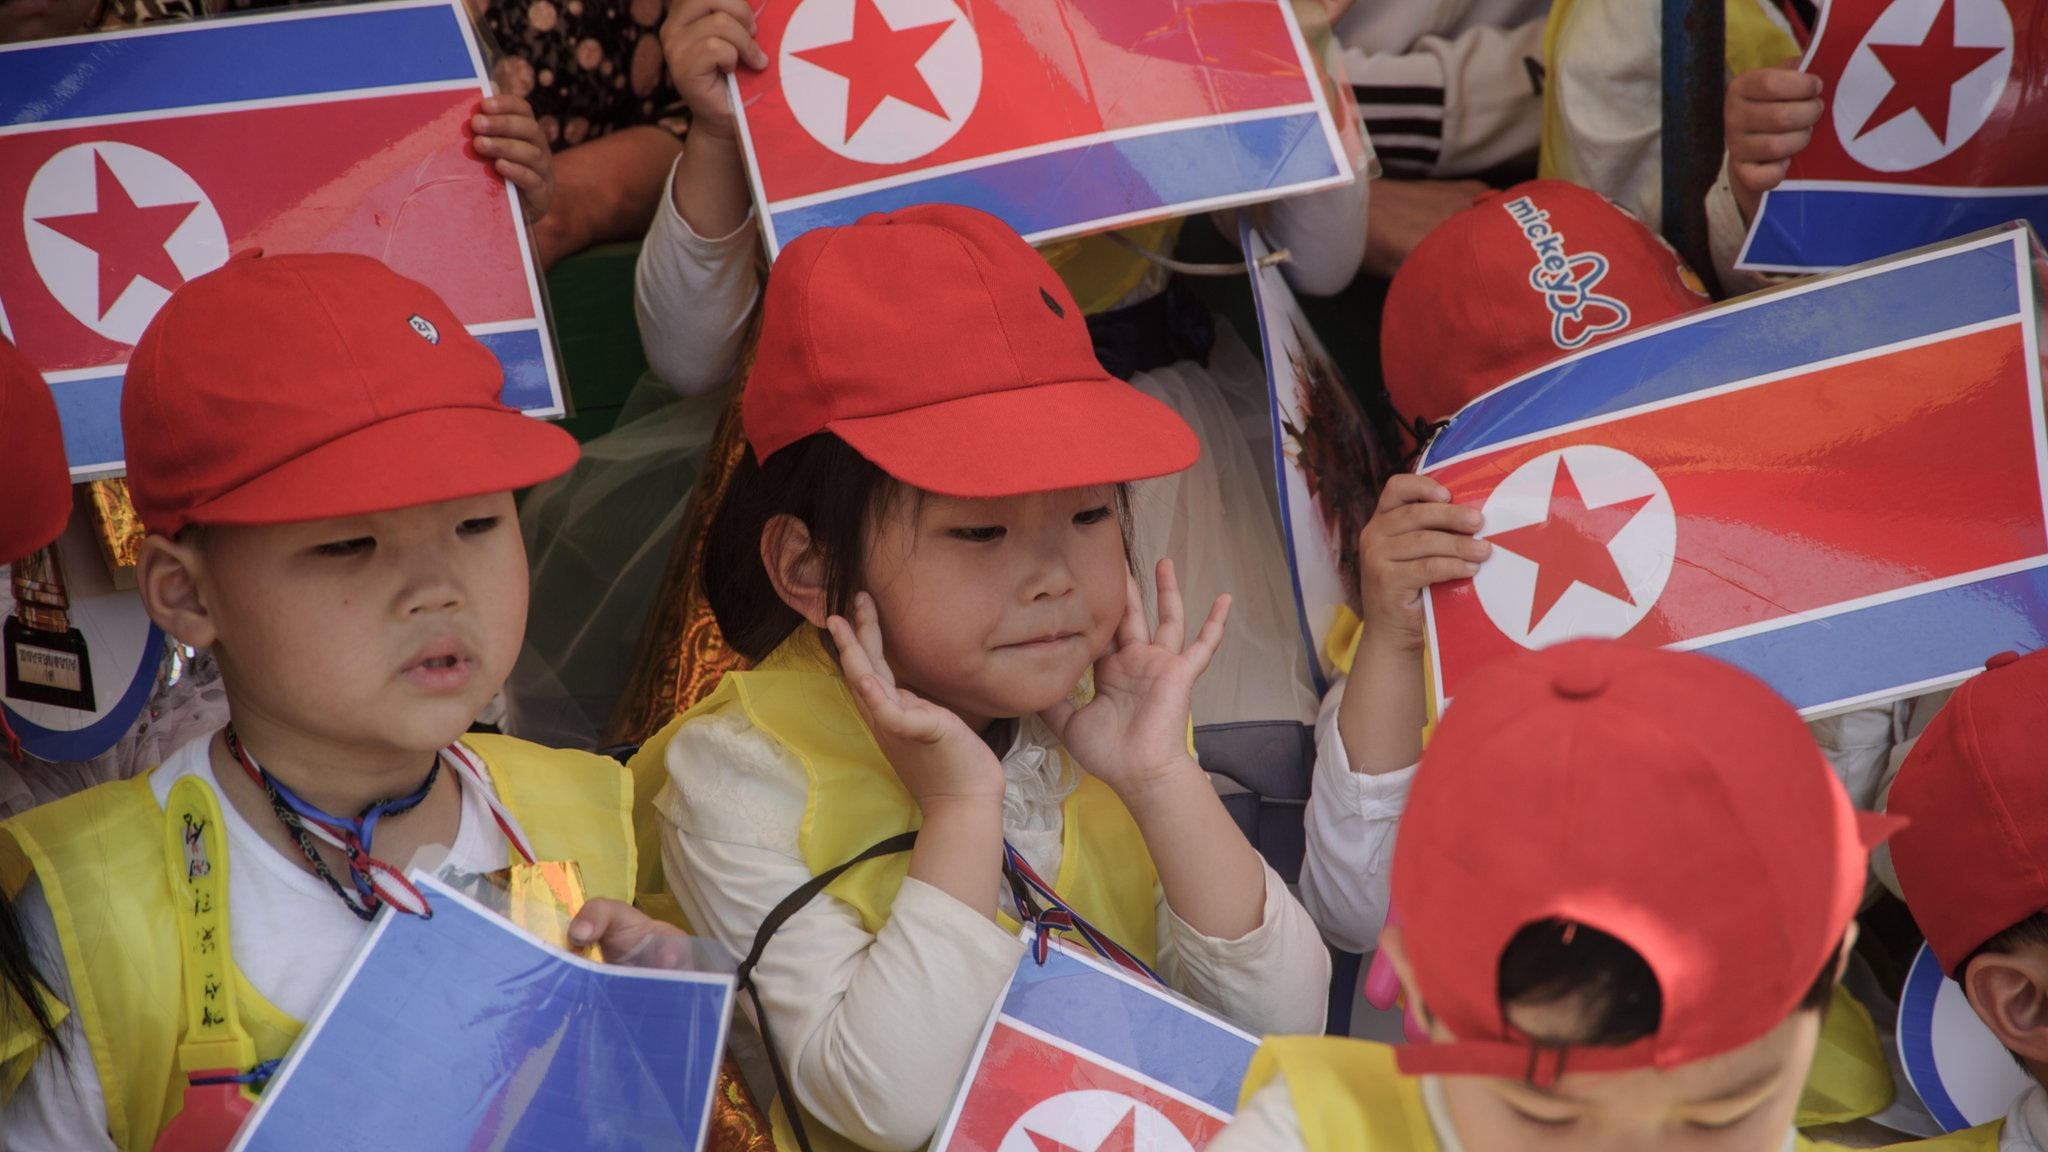 b5b228d8b North Korea  Everything you need to know about the country - CBBC ...